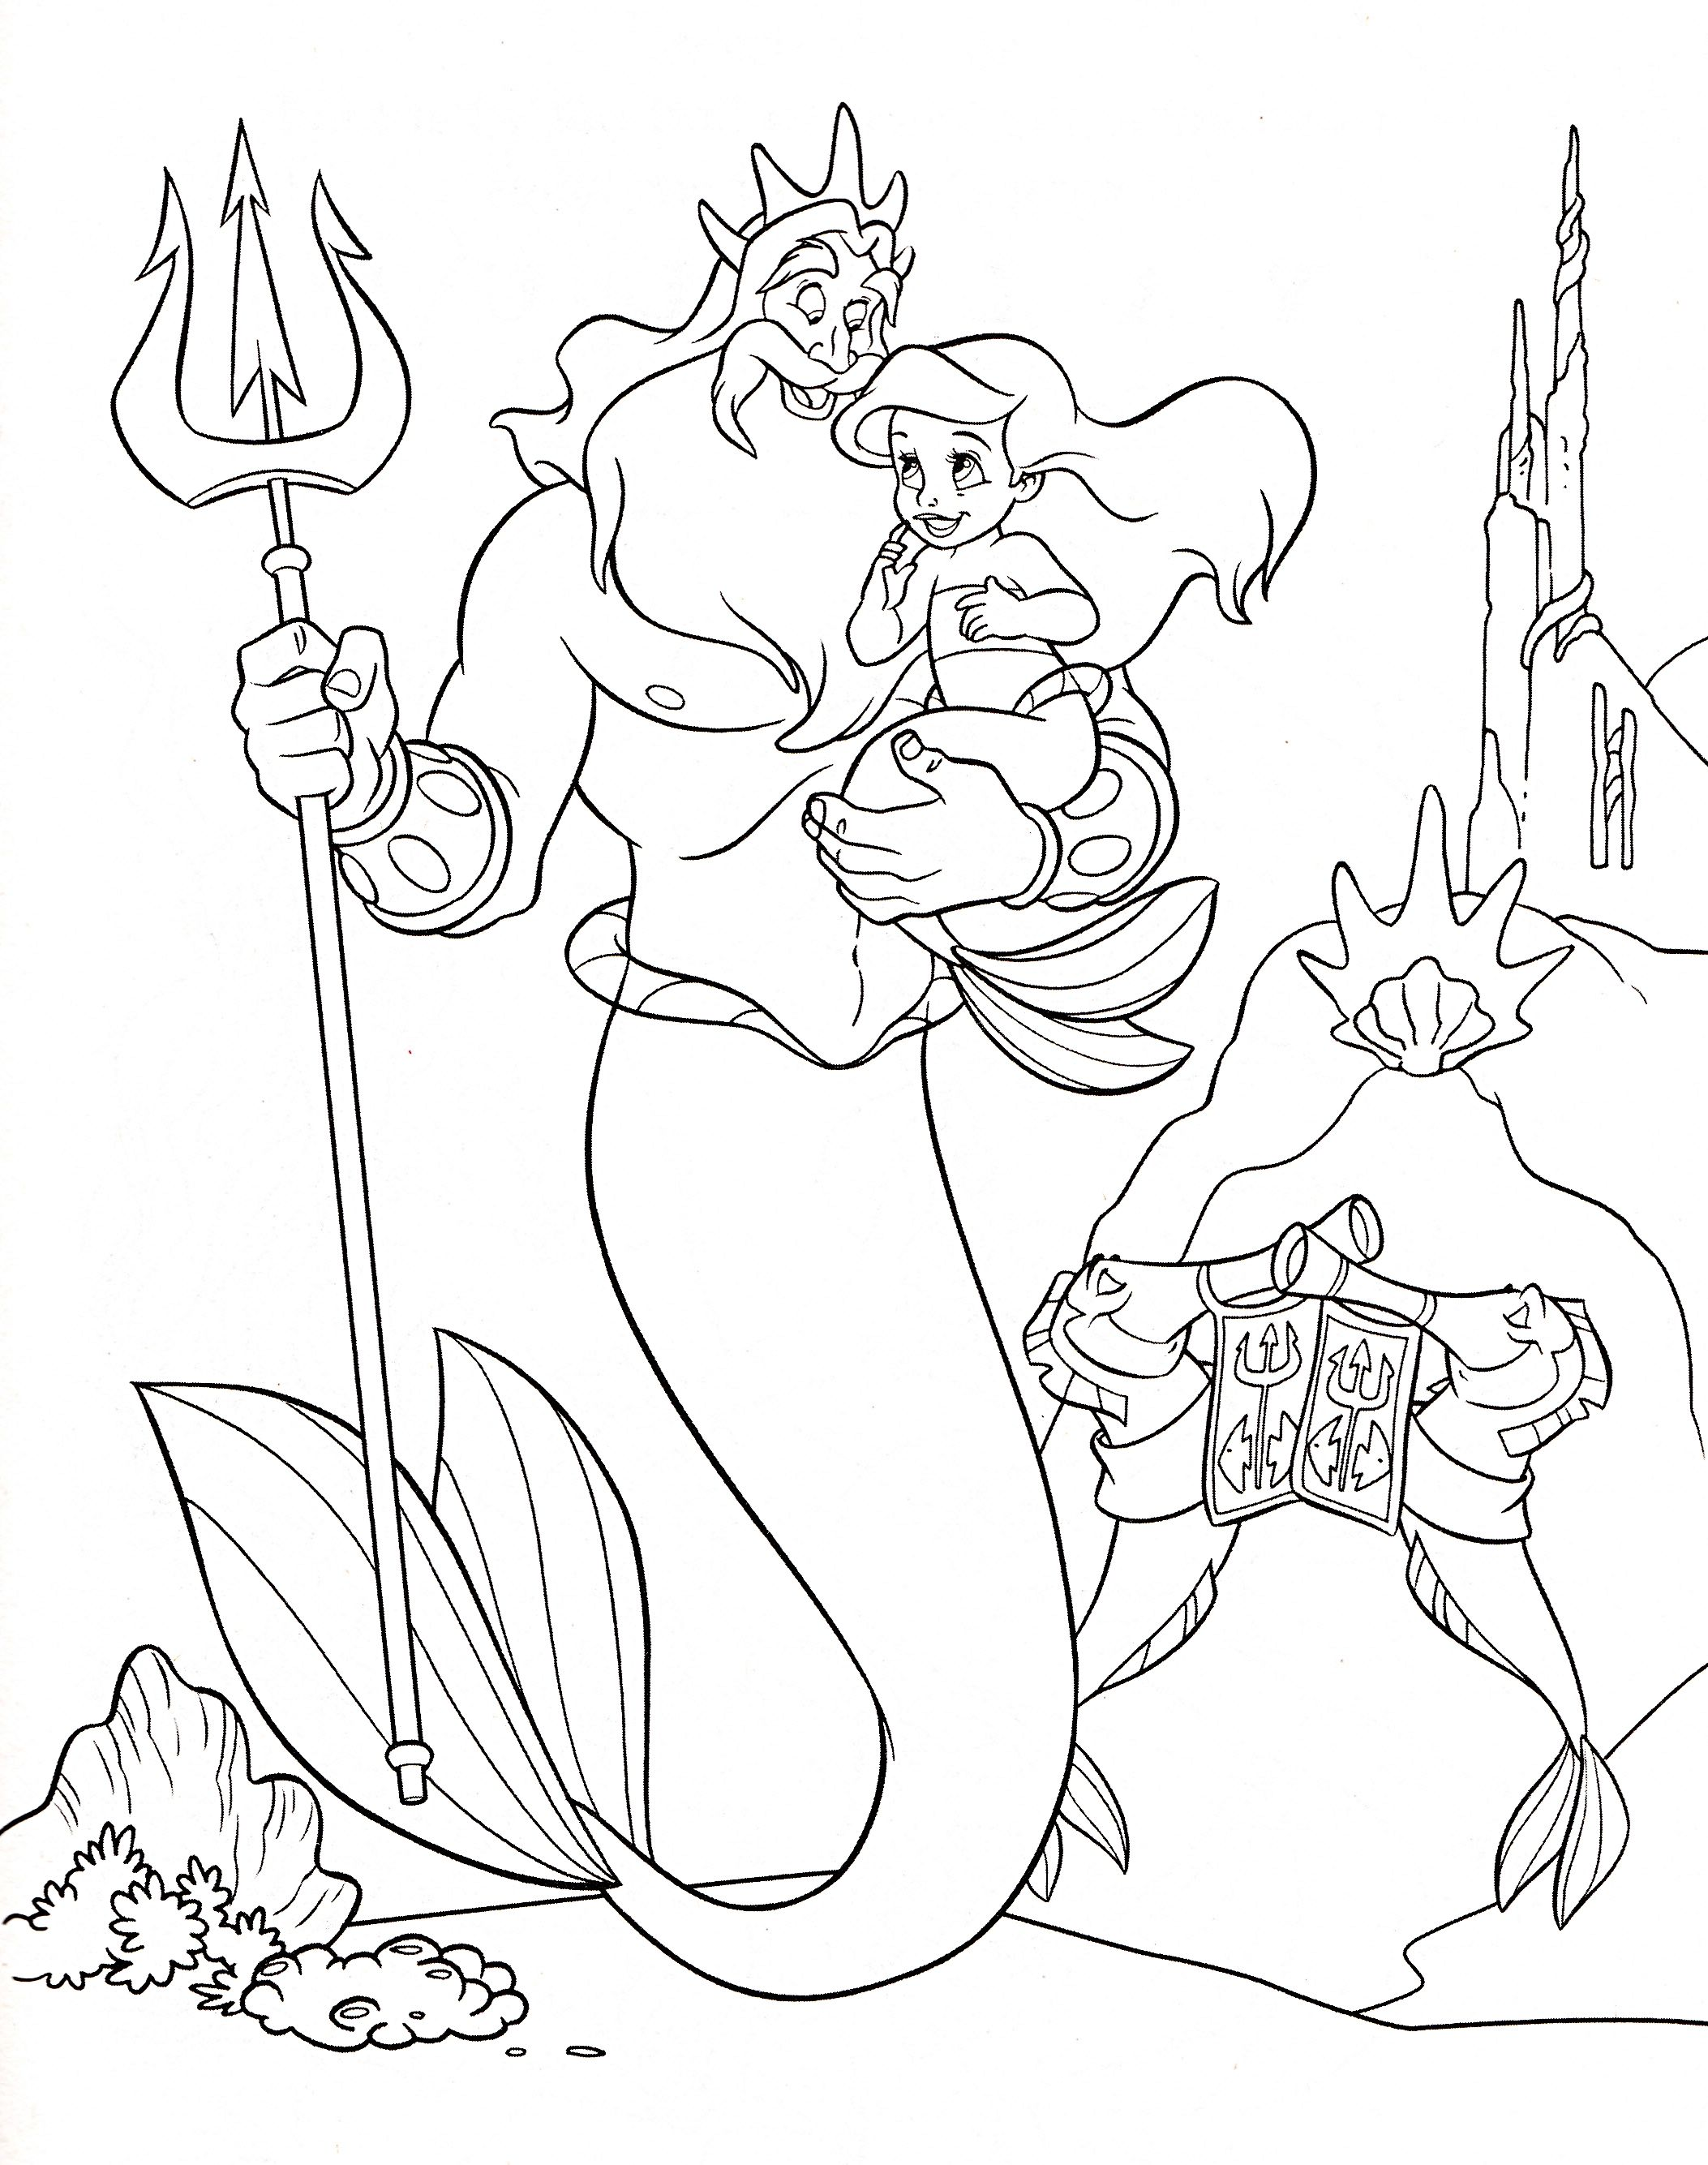 Free coloring pages disney princesses - Walt Disney Coloring Page Of King Triton And Princess Ariel From The Little Mermaid Ariel S Beginning Hd Wallpaper And Background Photos Of Walt Disney